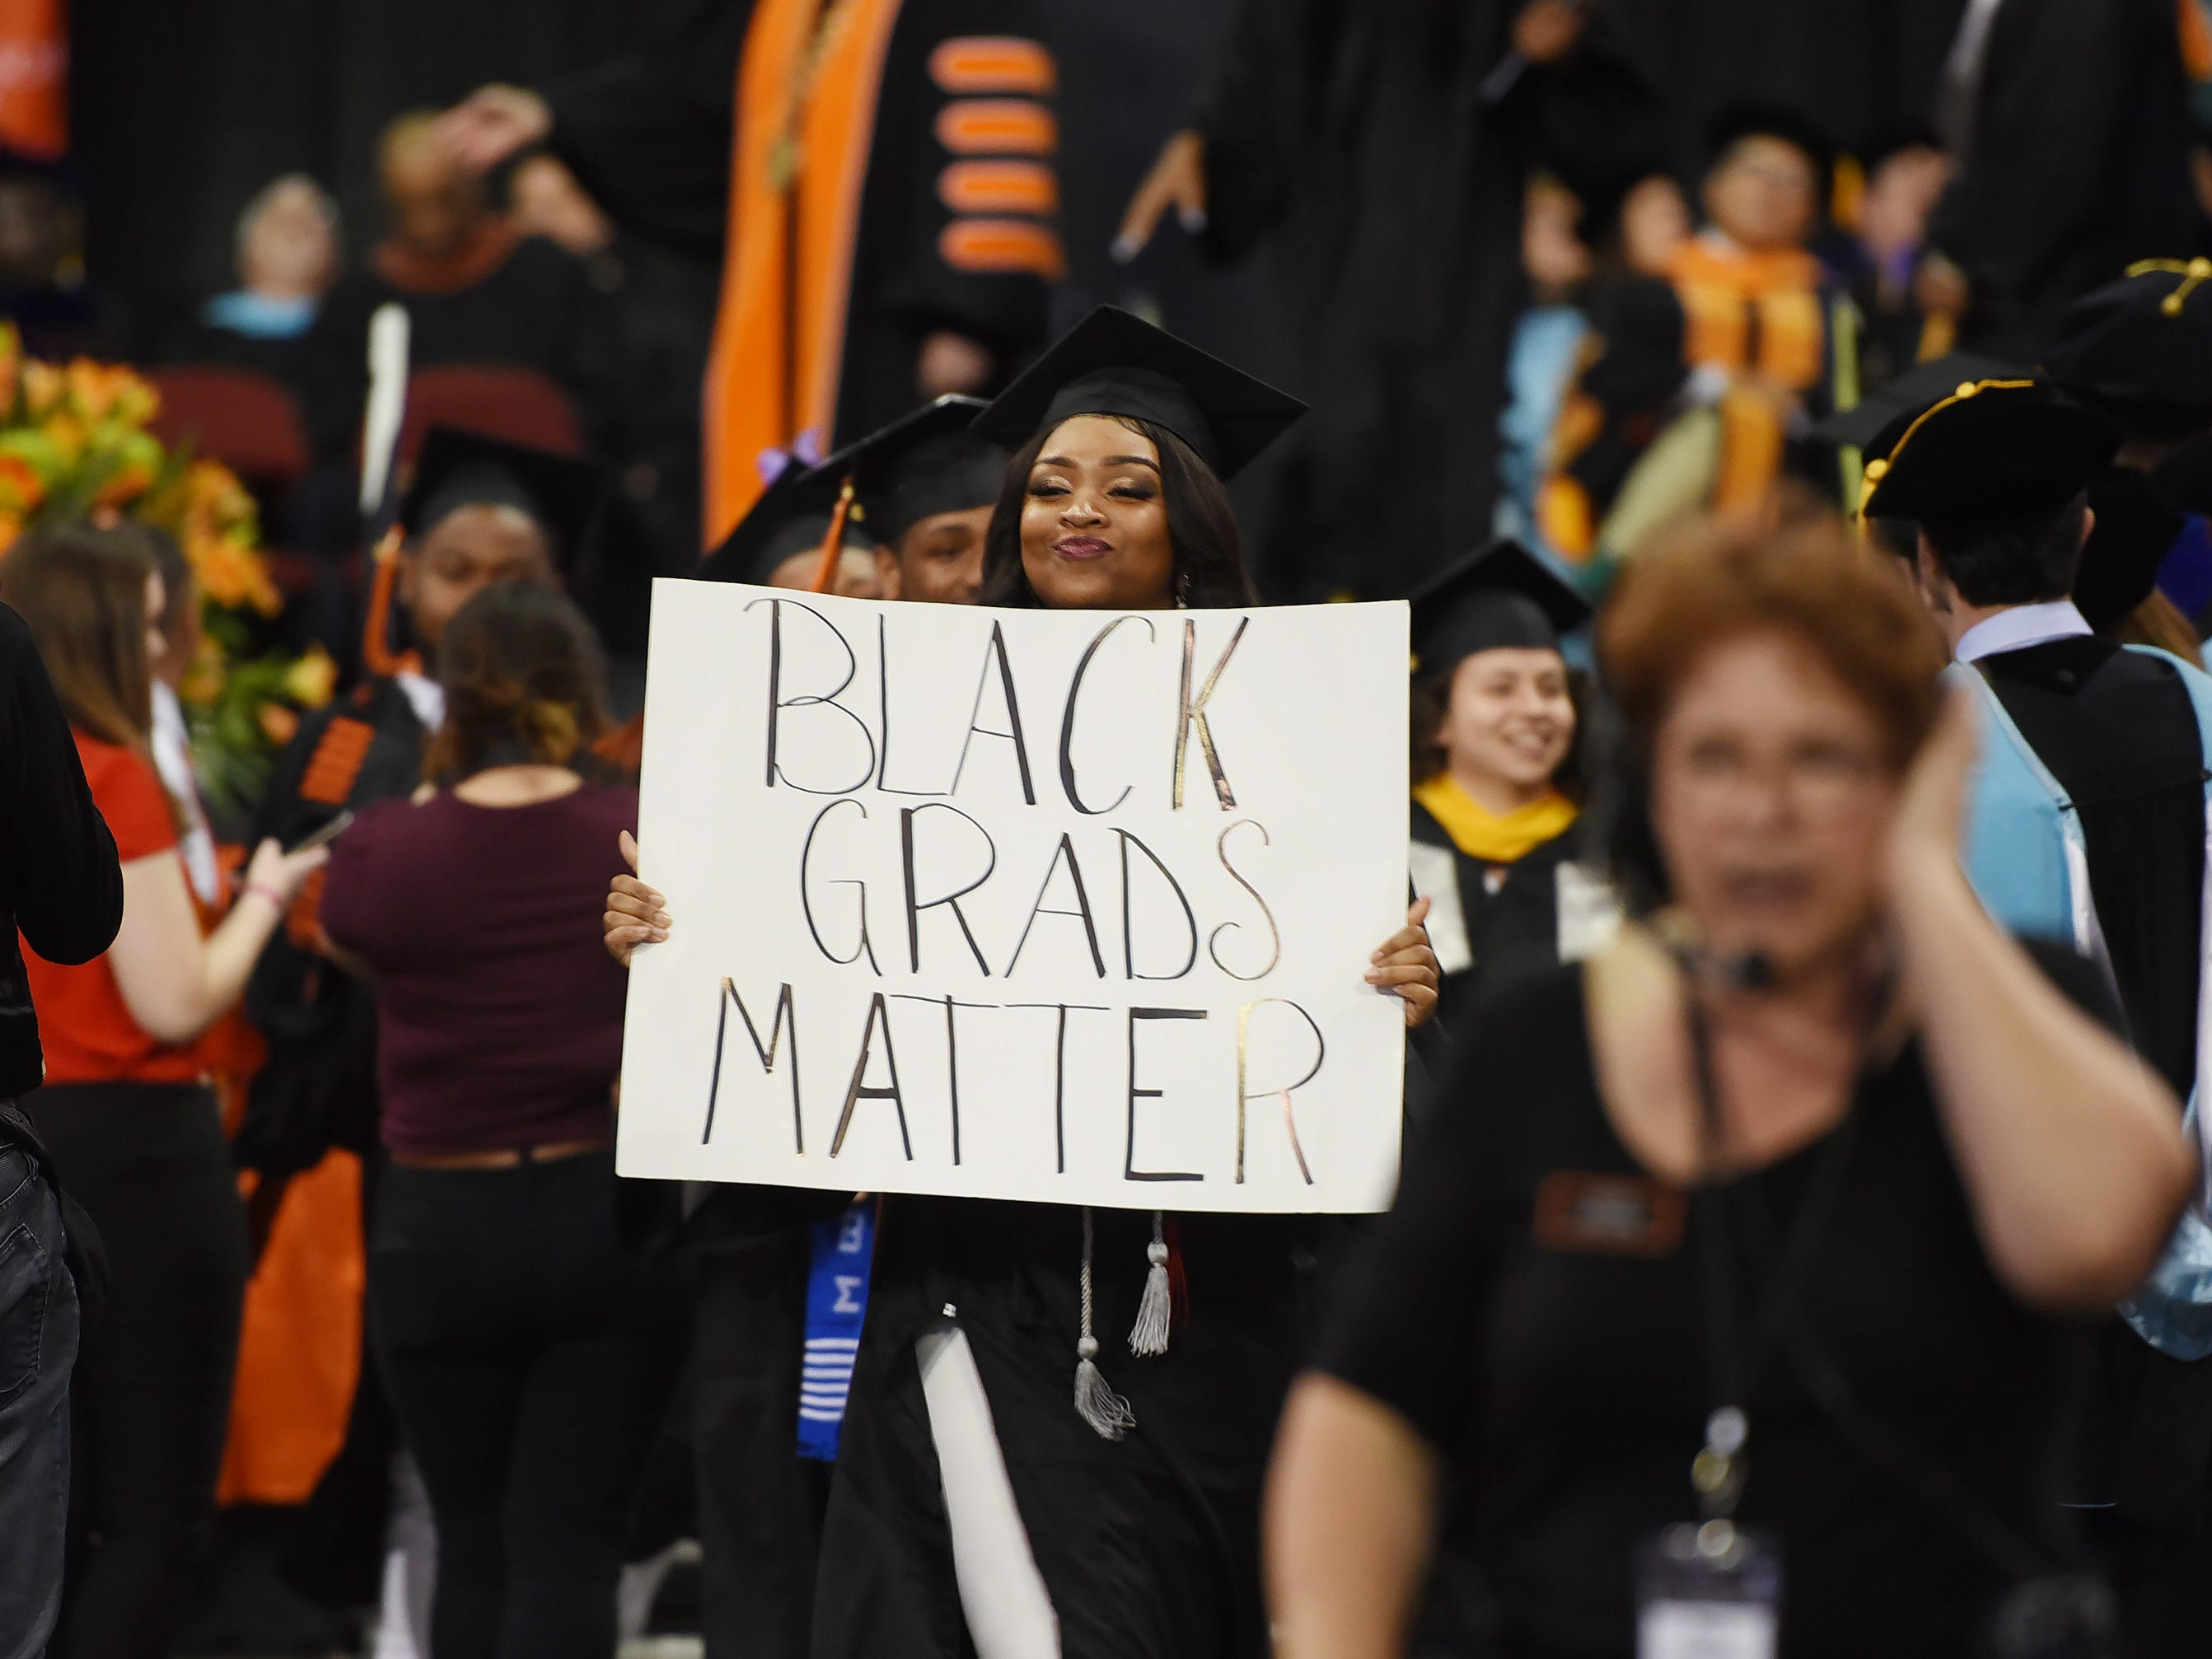 Brittany Anderson of North Caldwell, Major in Exercise Science, holds up a placard during the William Paterson University 2019 Commencement at the Prudential Center in Newark on 05/15/19.